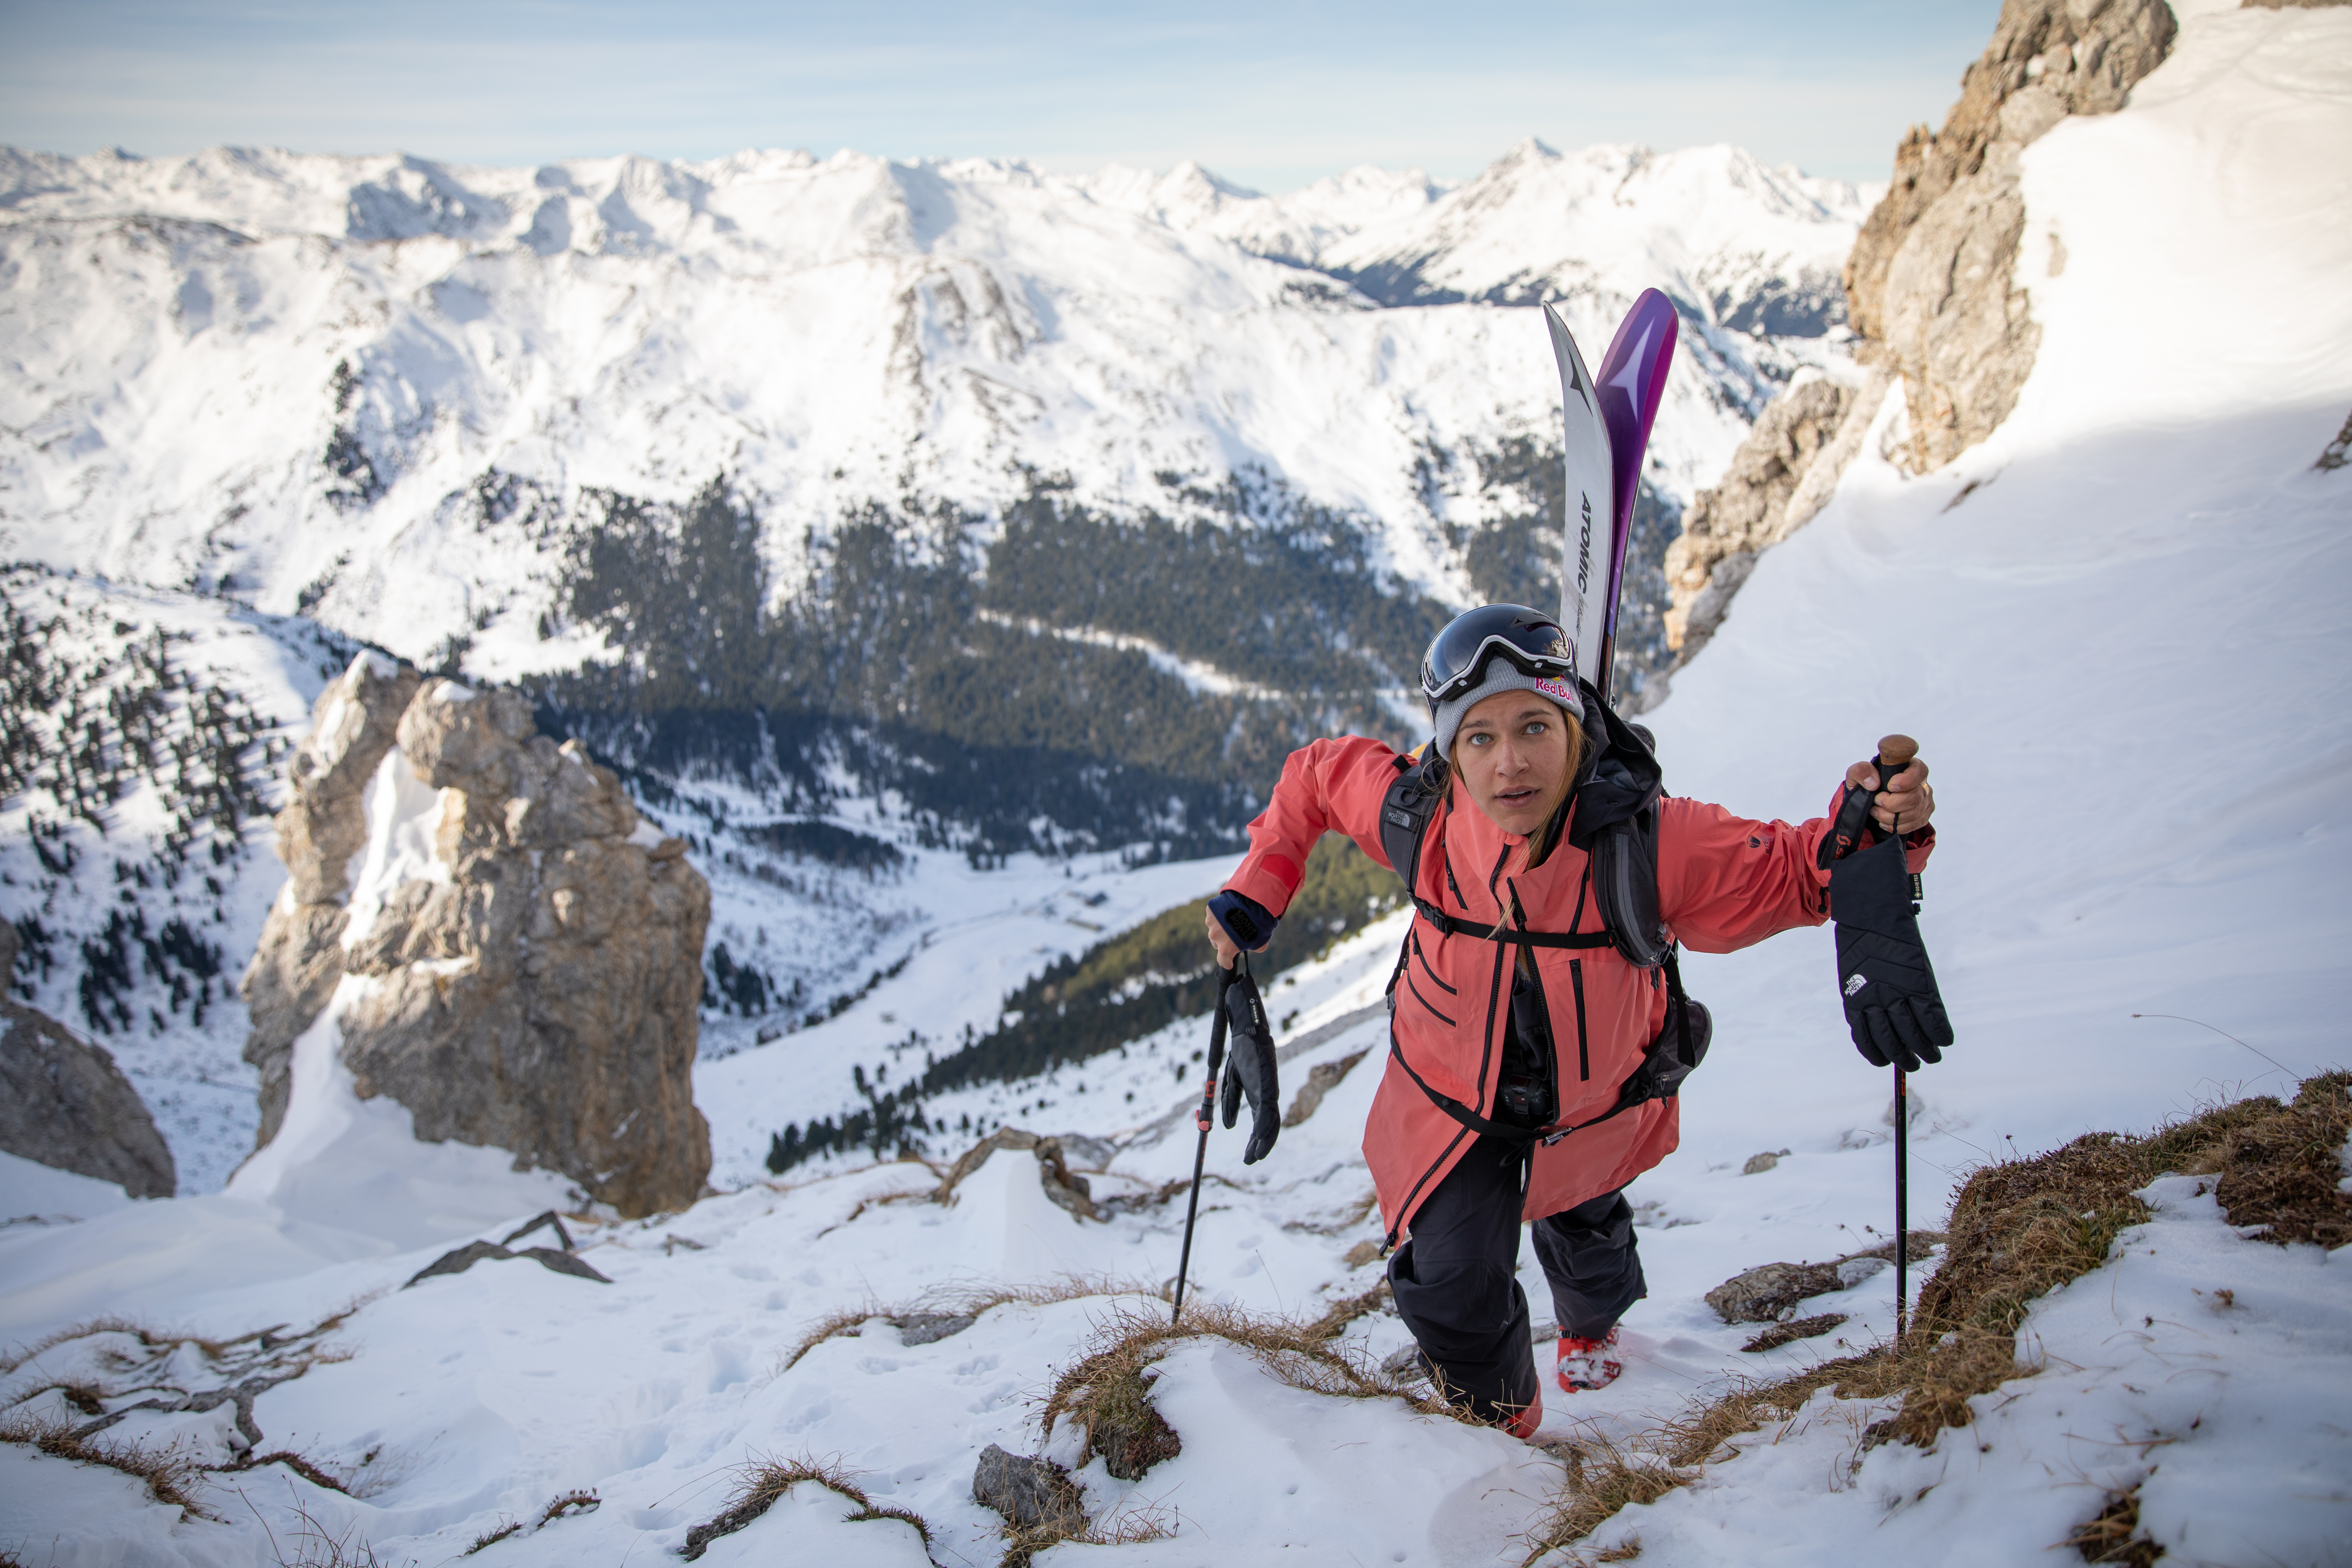 Arianna Tricomi joins The North Face Global athlete team